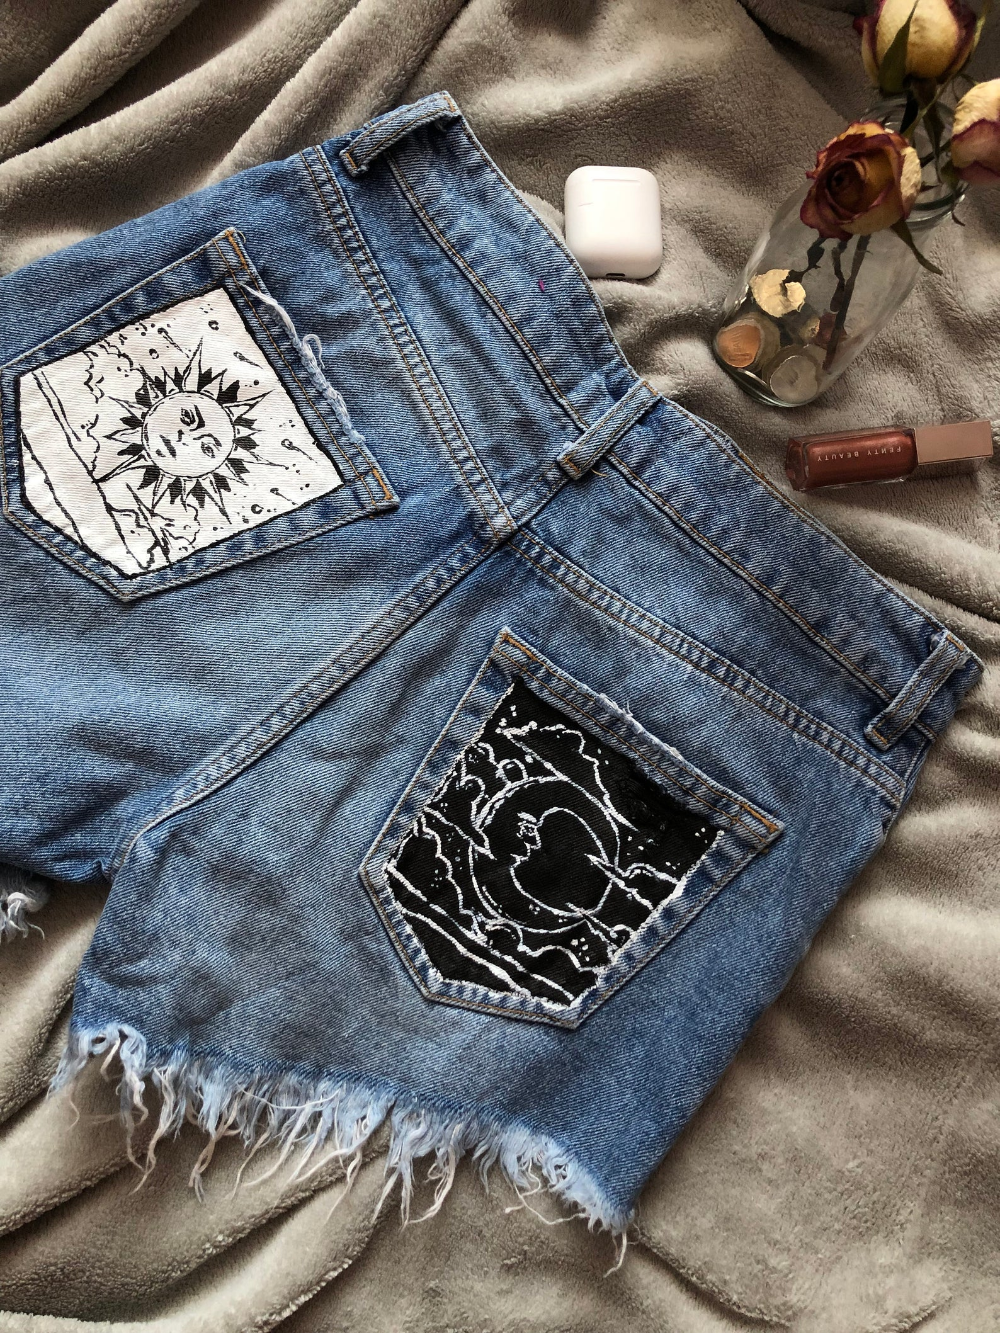 Painted jeans with moon and sun in black and white